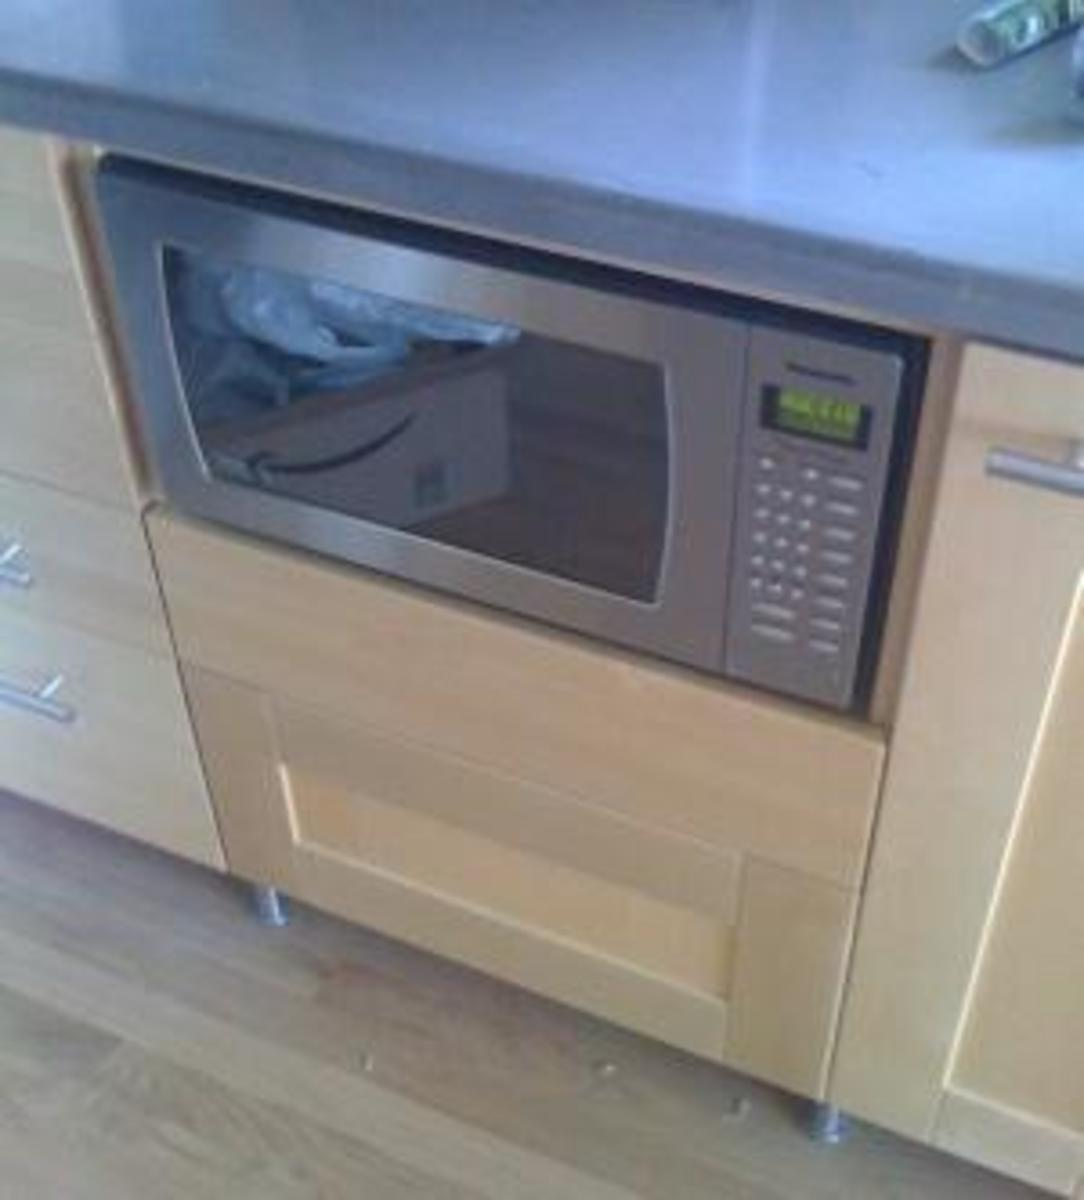 Mount Countertop Microwave Over Stove : ... Microwave - Tips and Kitchen Design Ideas - Microwave Drawer and More